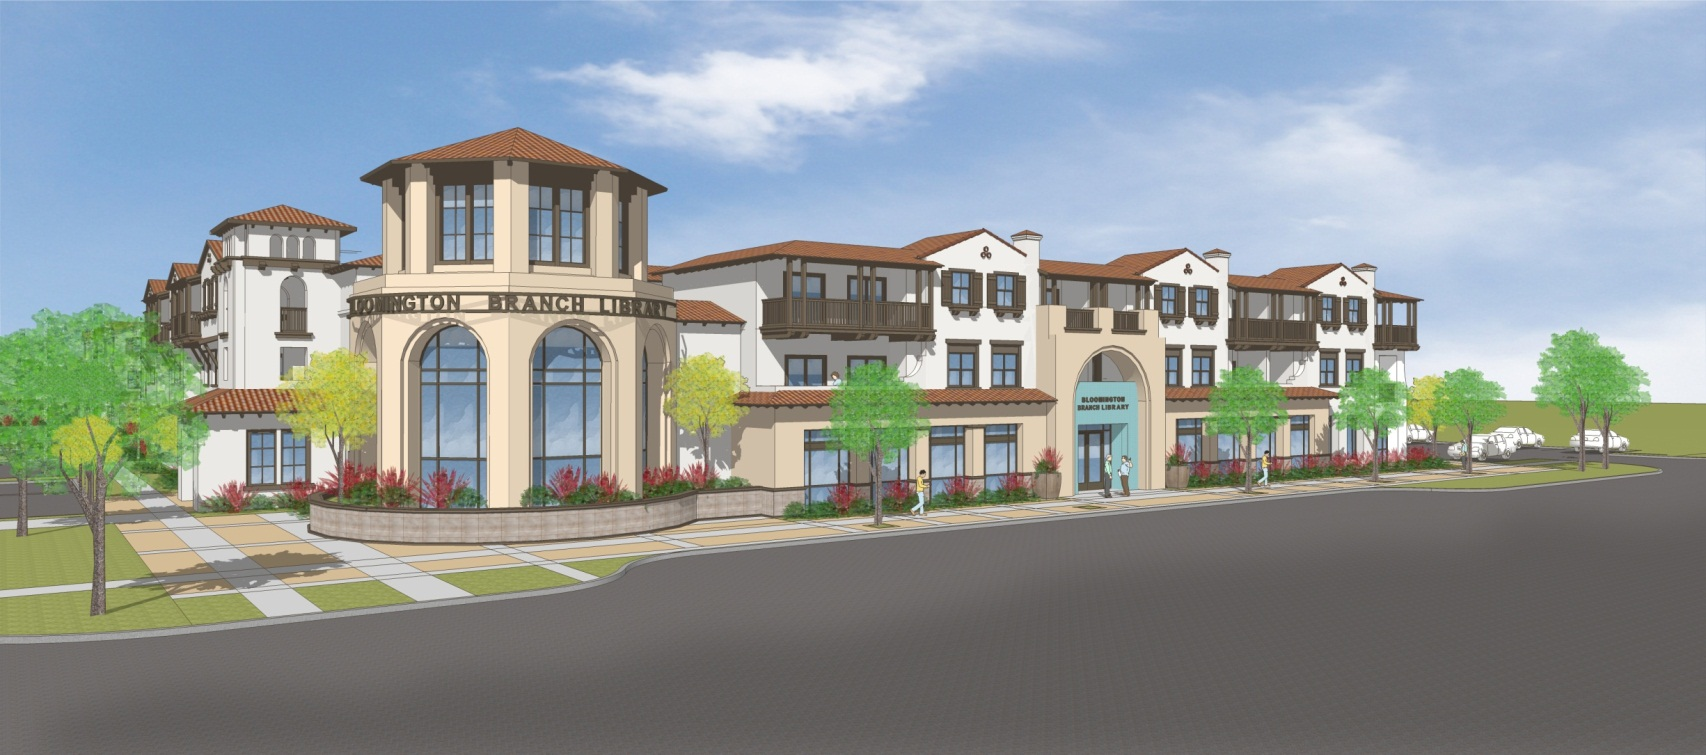 Rendering of Affordable Bloomington Project